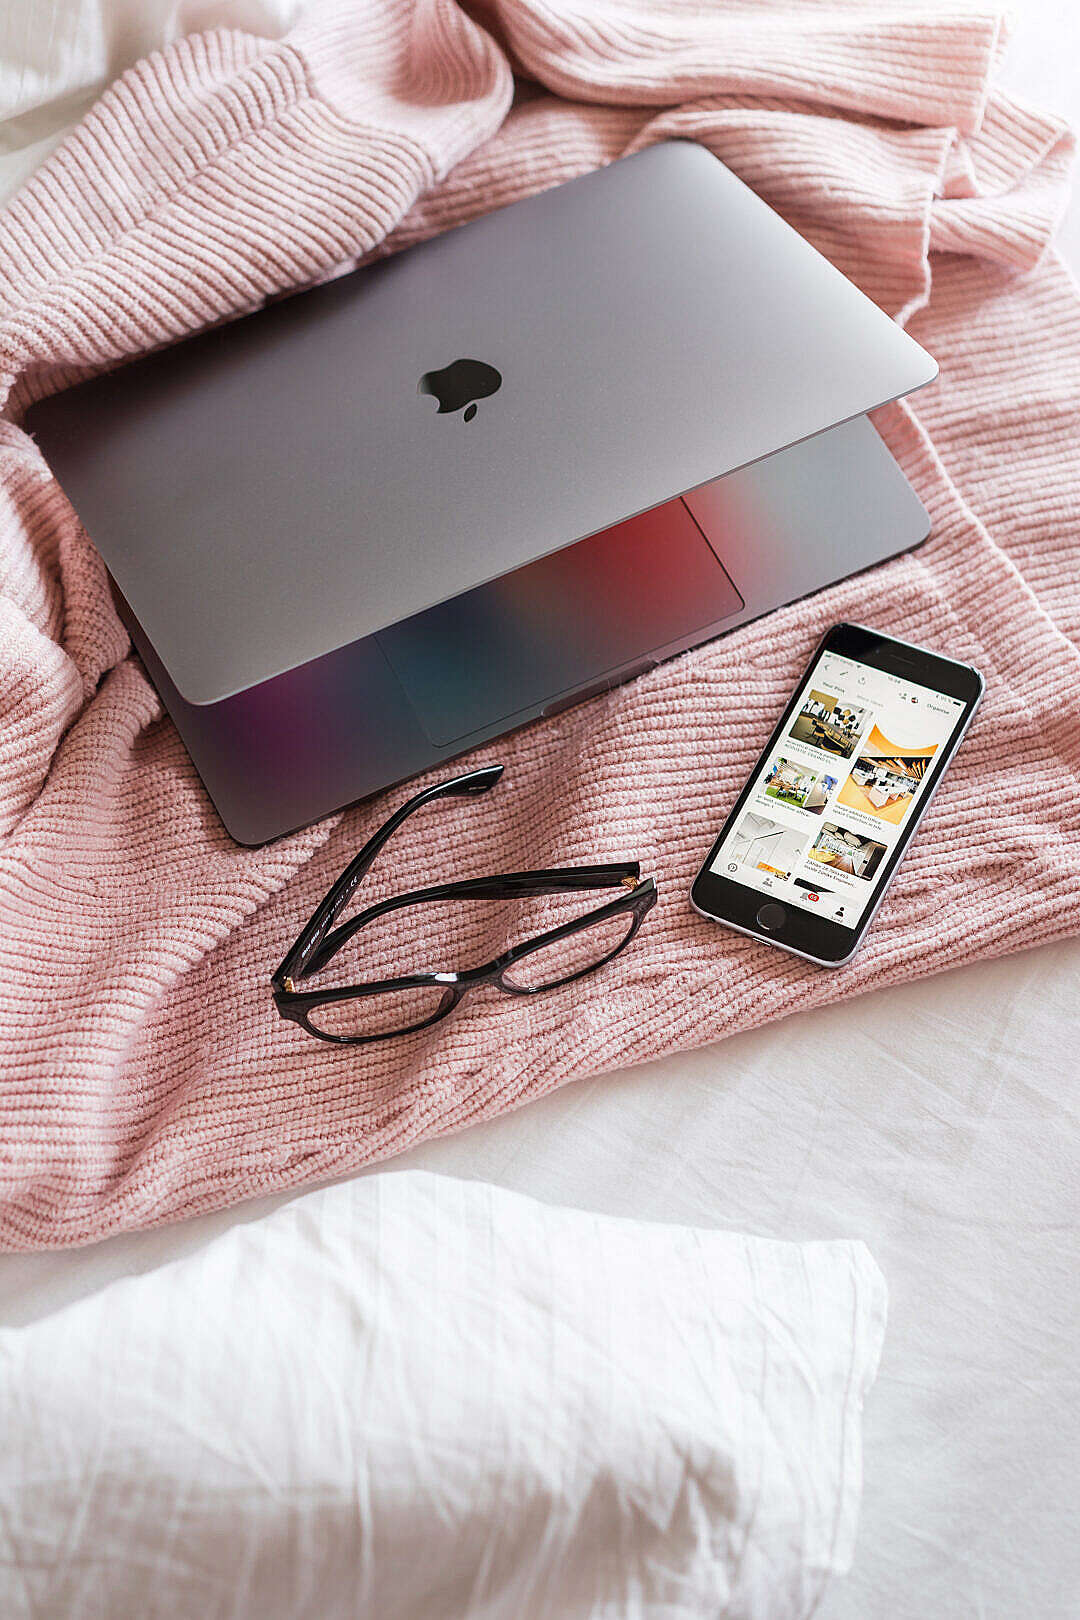 Download Feminine Ladypreneur Laptop and Smartphone on Bed FREE Stock Photo